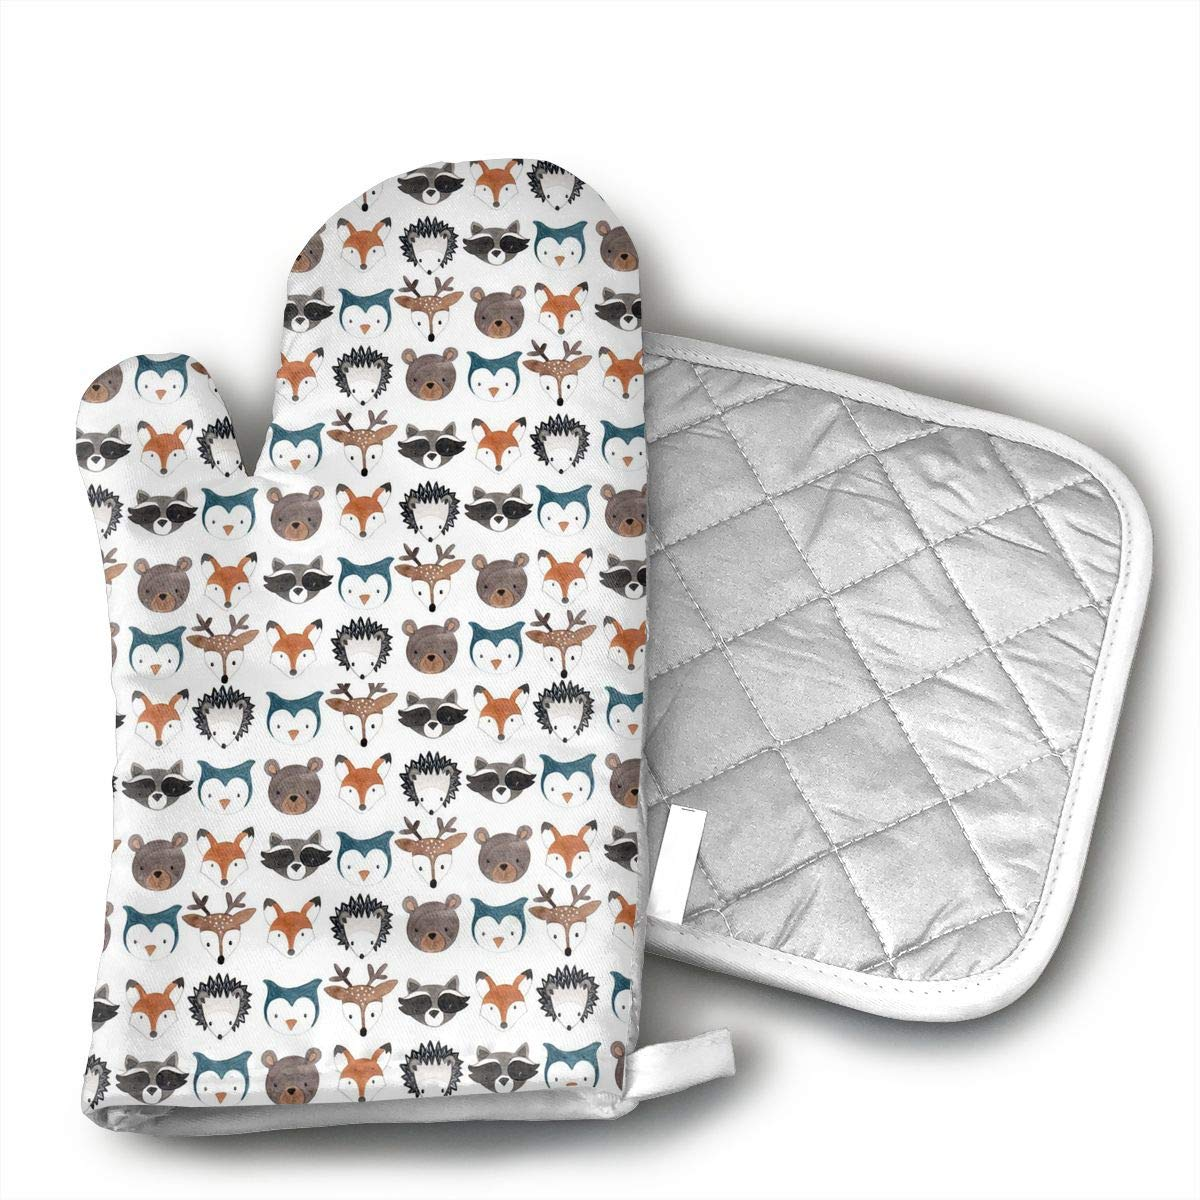 Fechahao Woodland Creatures Deer Bear Mouse Oven Mitts with Quilted Cotton Lining - Heat Resistant Kitchen Gloves, Matching Mini Oven Mitts